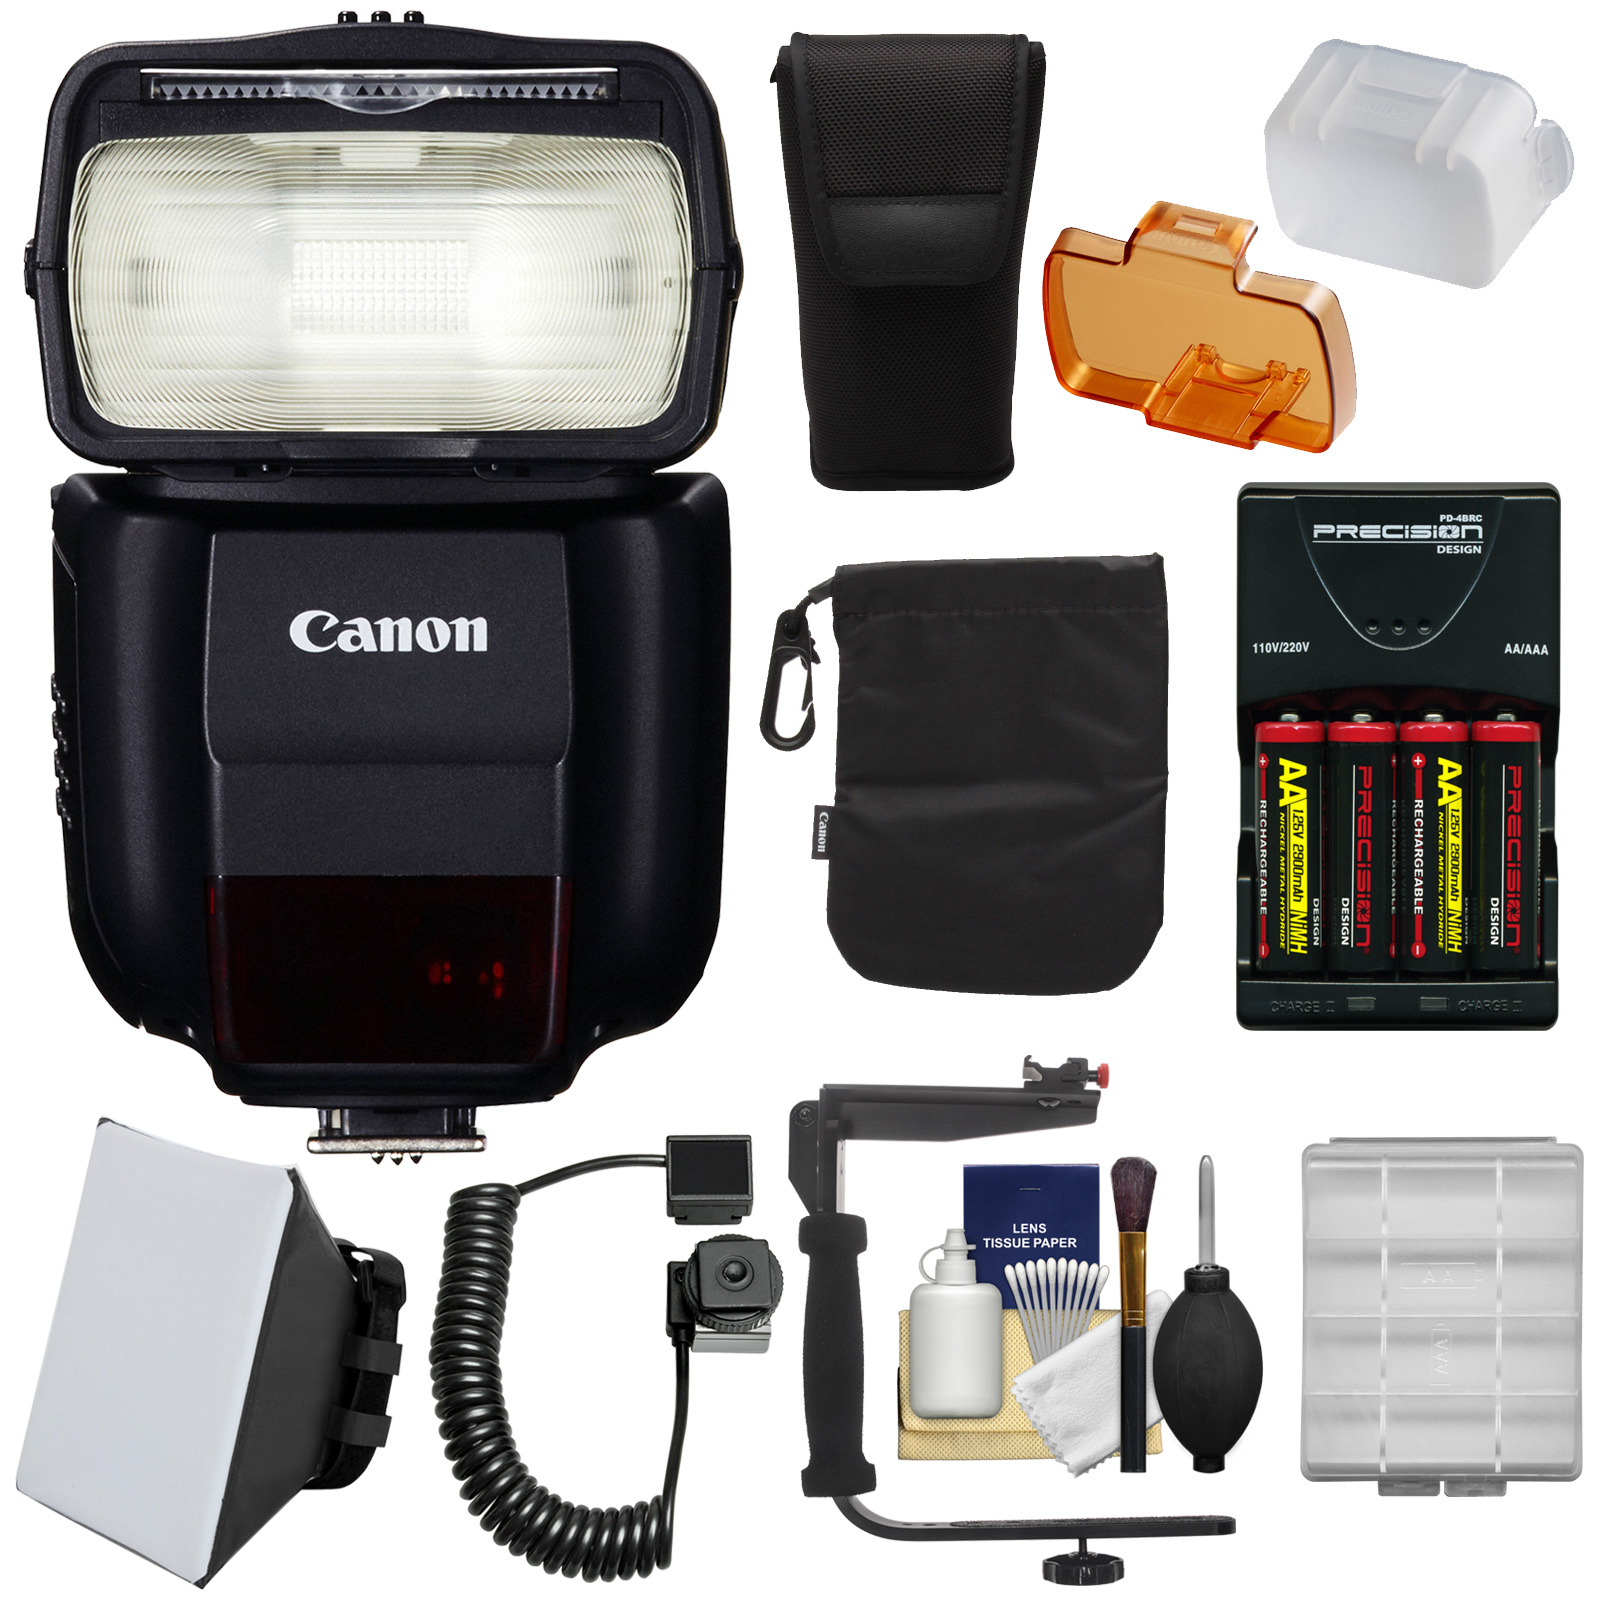 Canon Speedlite 430EX III-RT Flash with Bracket & Cord + ...